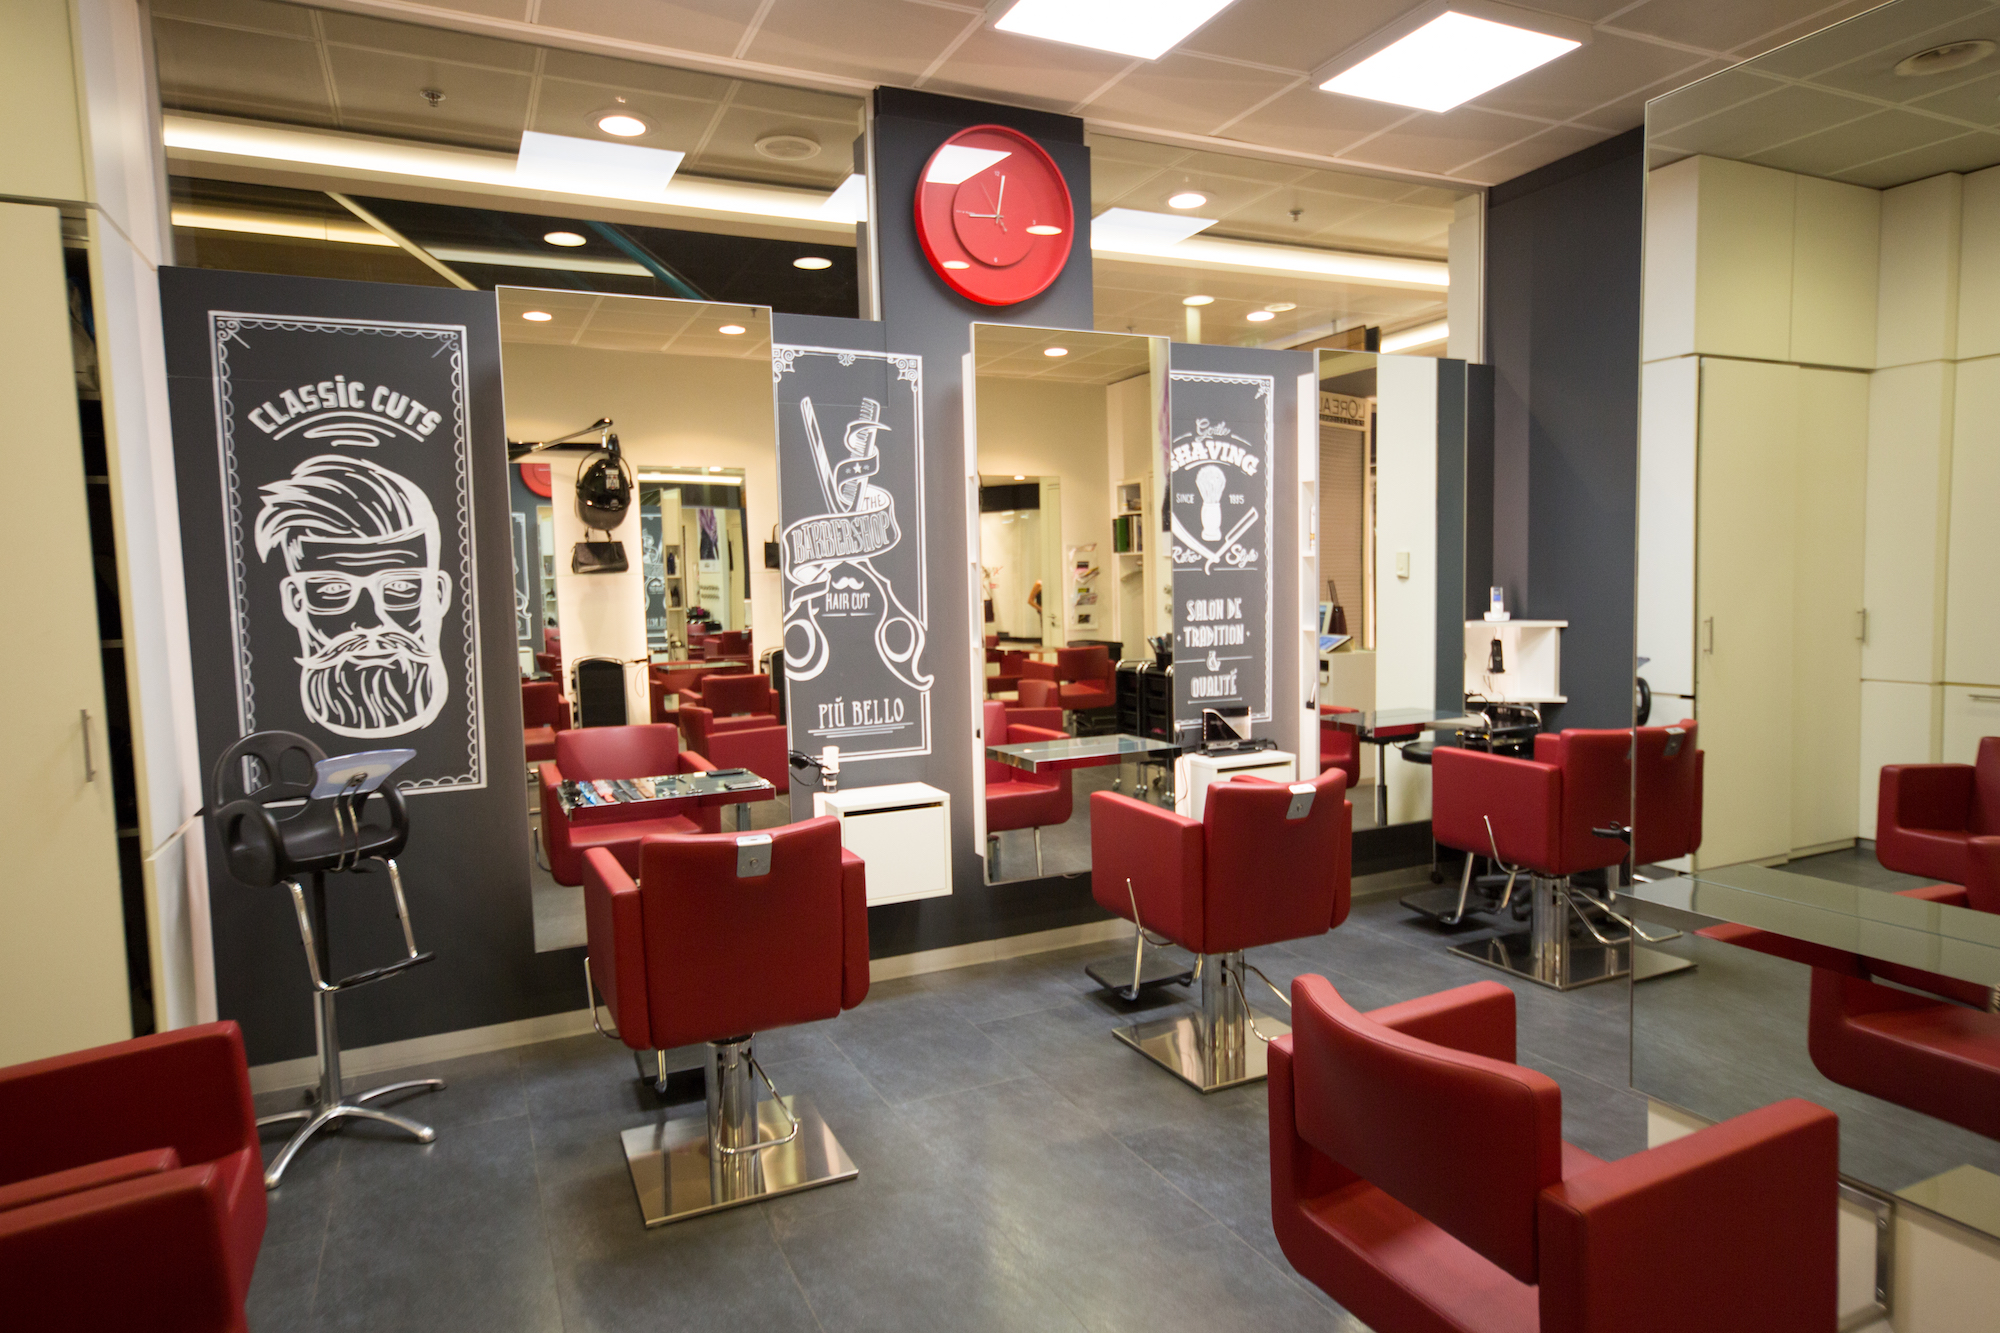 Salon De Coiffure Dessange Dessange City Concorde Shopping Center